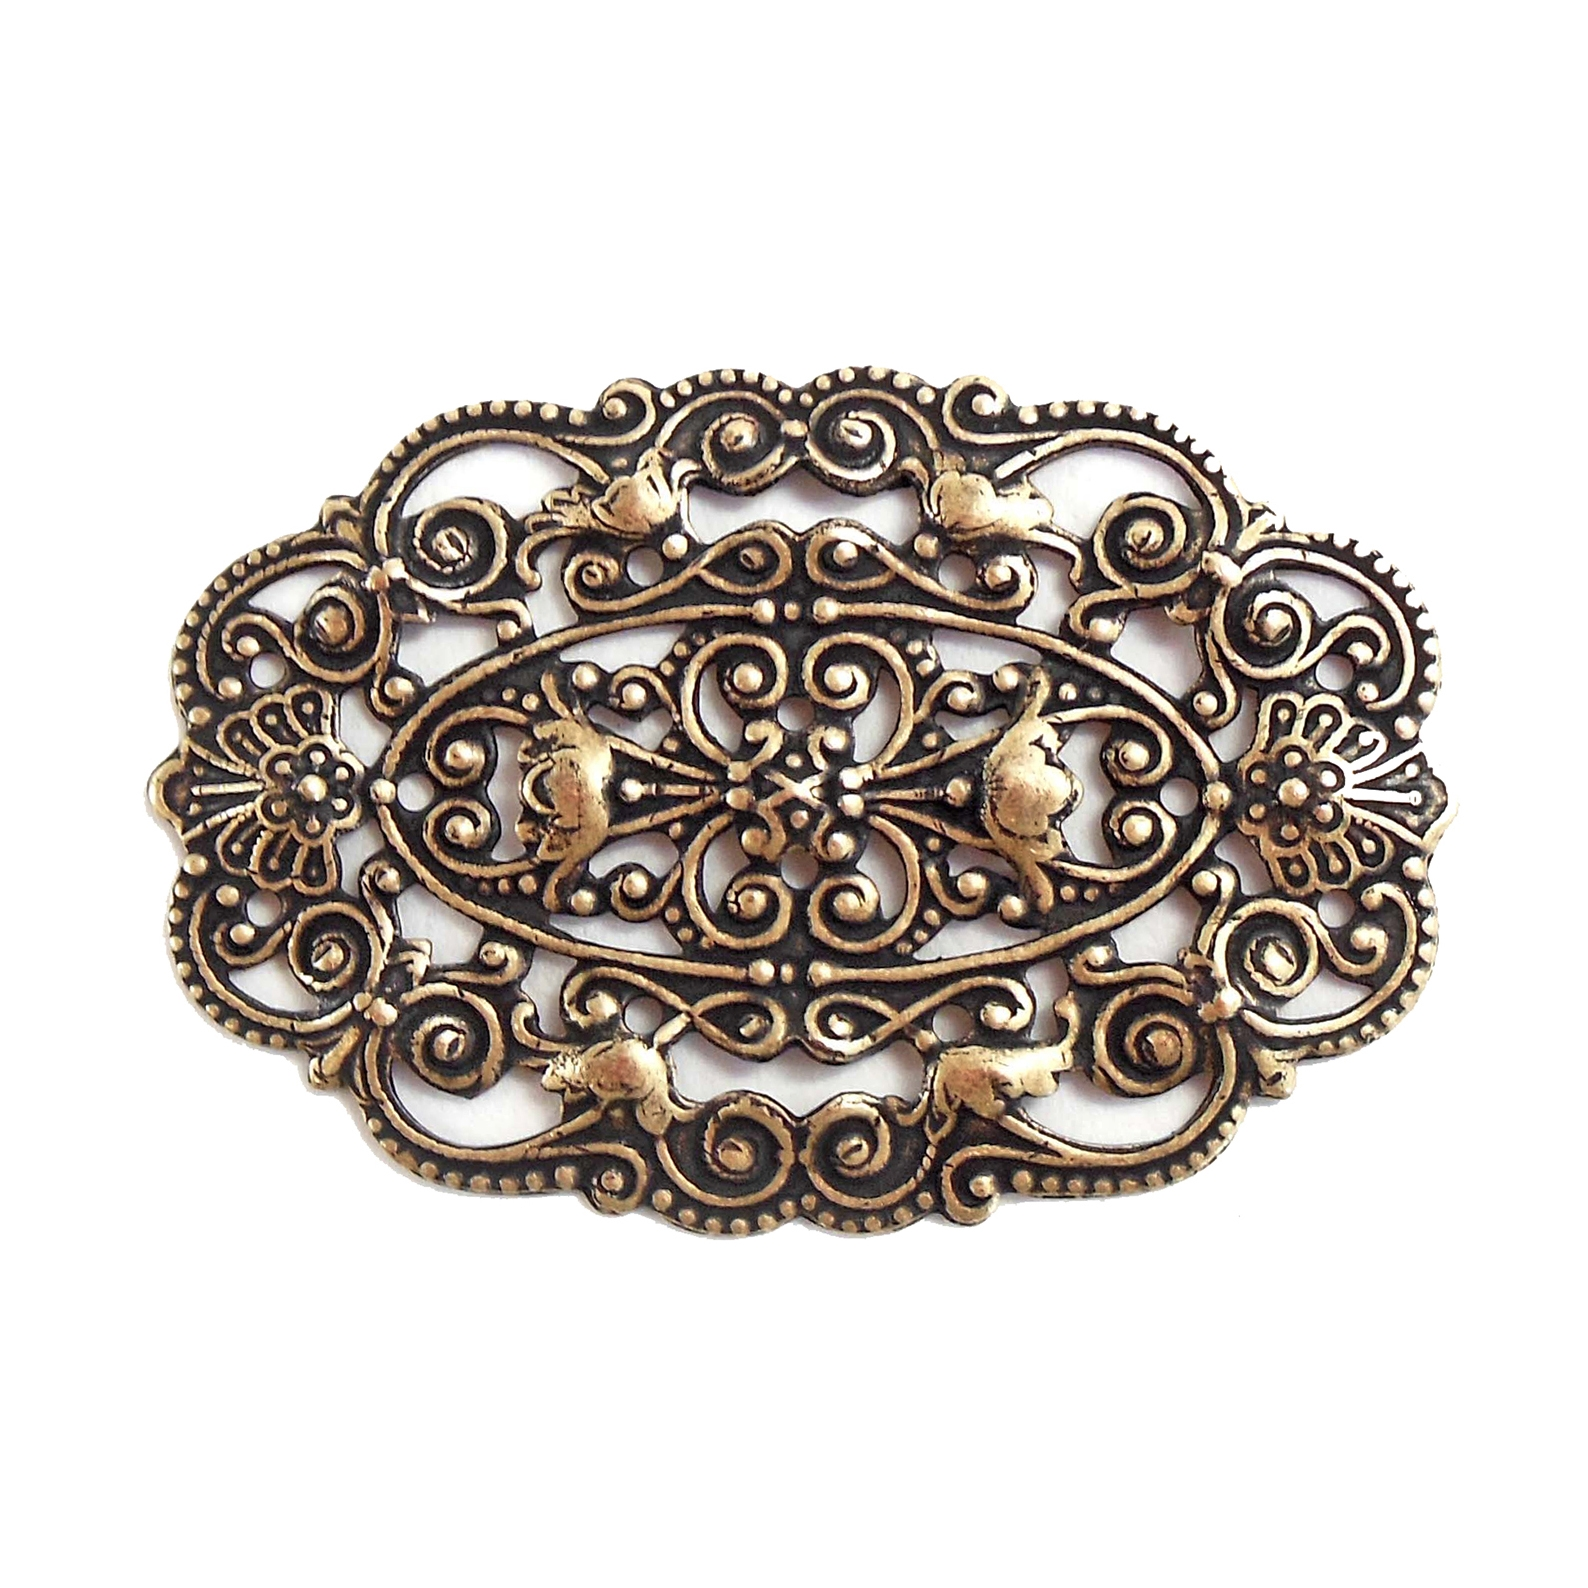 victorian beading filigree, brass ox, filigree, antique brass, beading filigree, victorian design, US made, nickel free, black antiquing, filigree centerpiece, jewelry supplies, vintage supplies, jewelry making, B'sue Boutiques, 30x44mm, 07738